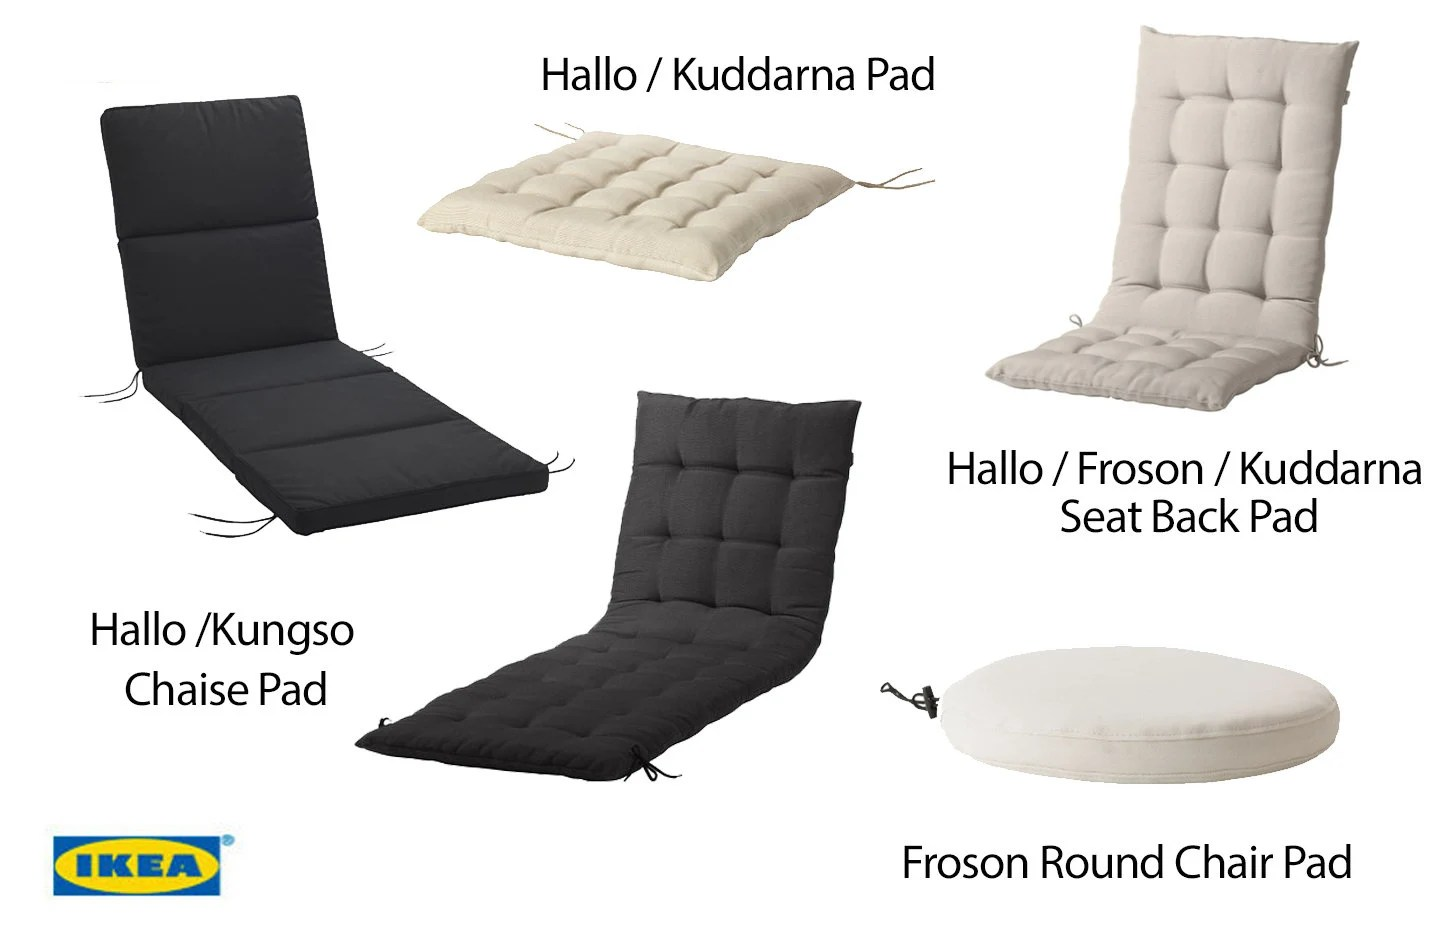 Chaise Martin Ikea Ikea Outdoor Chair Pad Covers Hallo Kungso Kuddarna Froson Slip